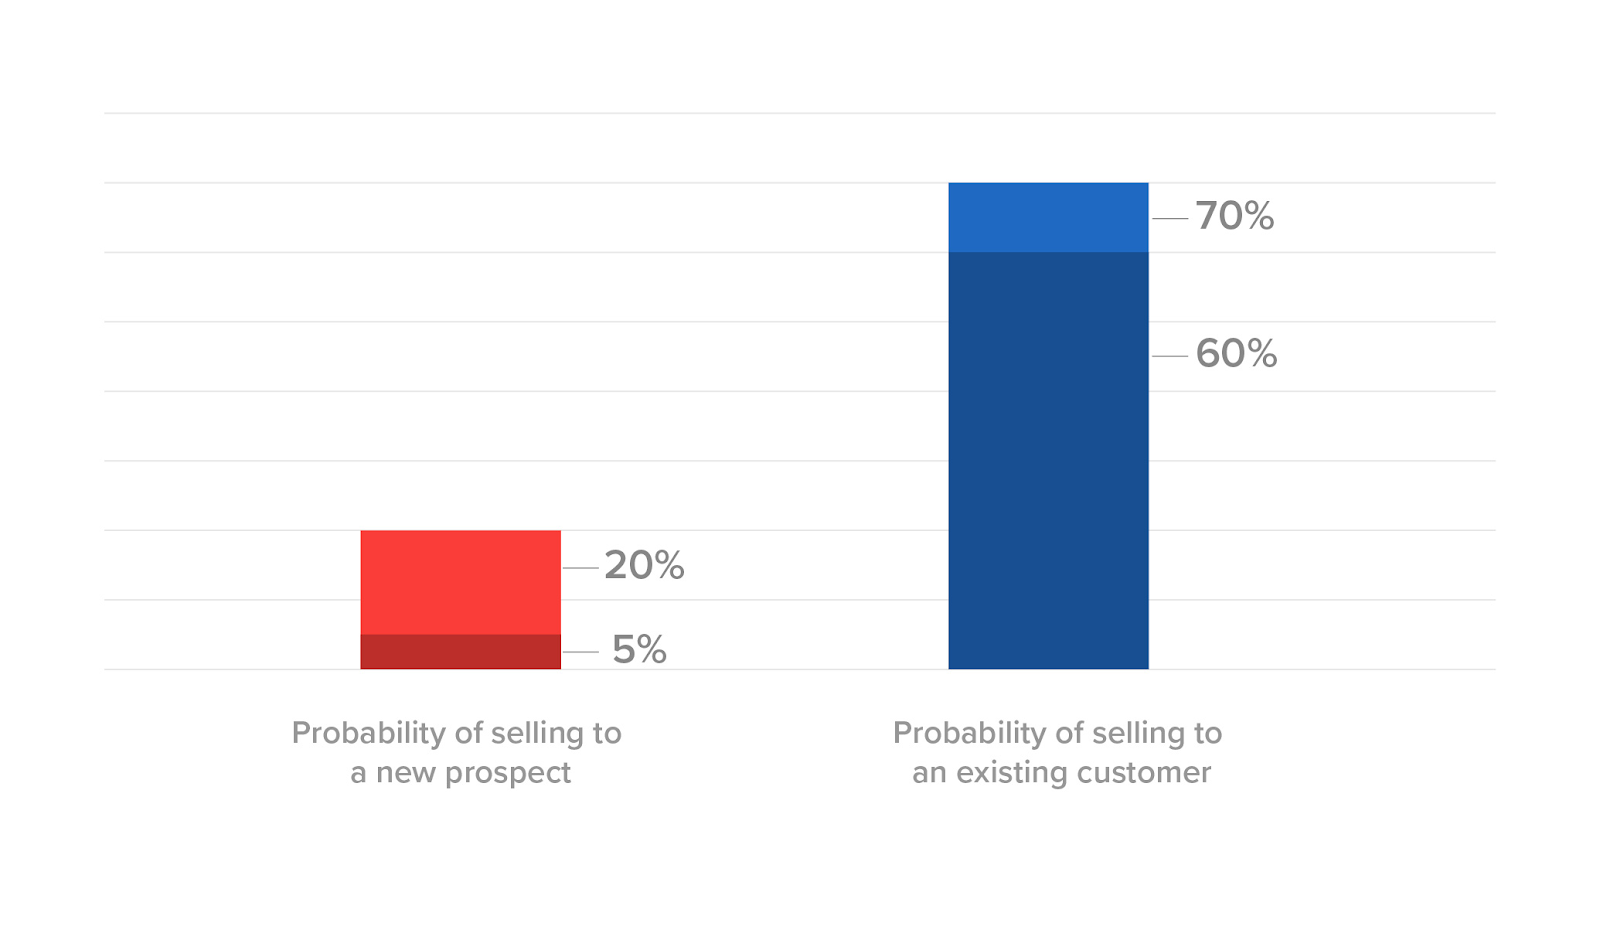 Chart showing that the probability of selling to an existing customer is much higher than to a new customer